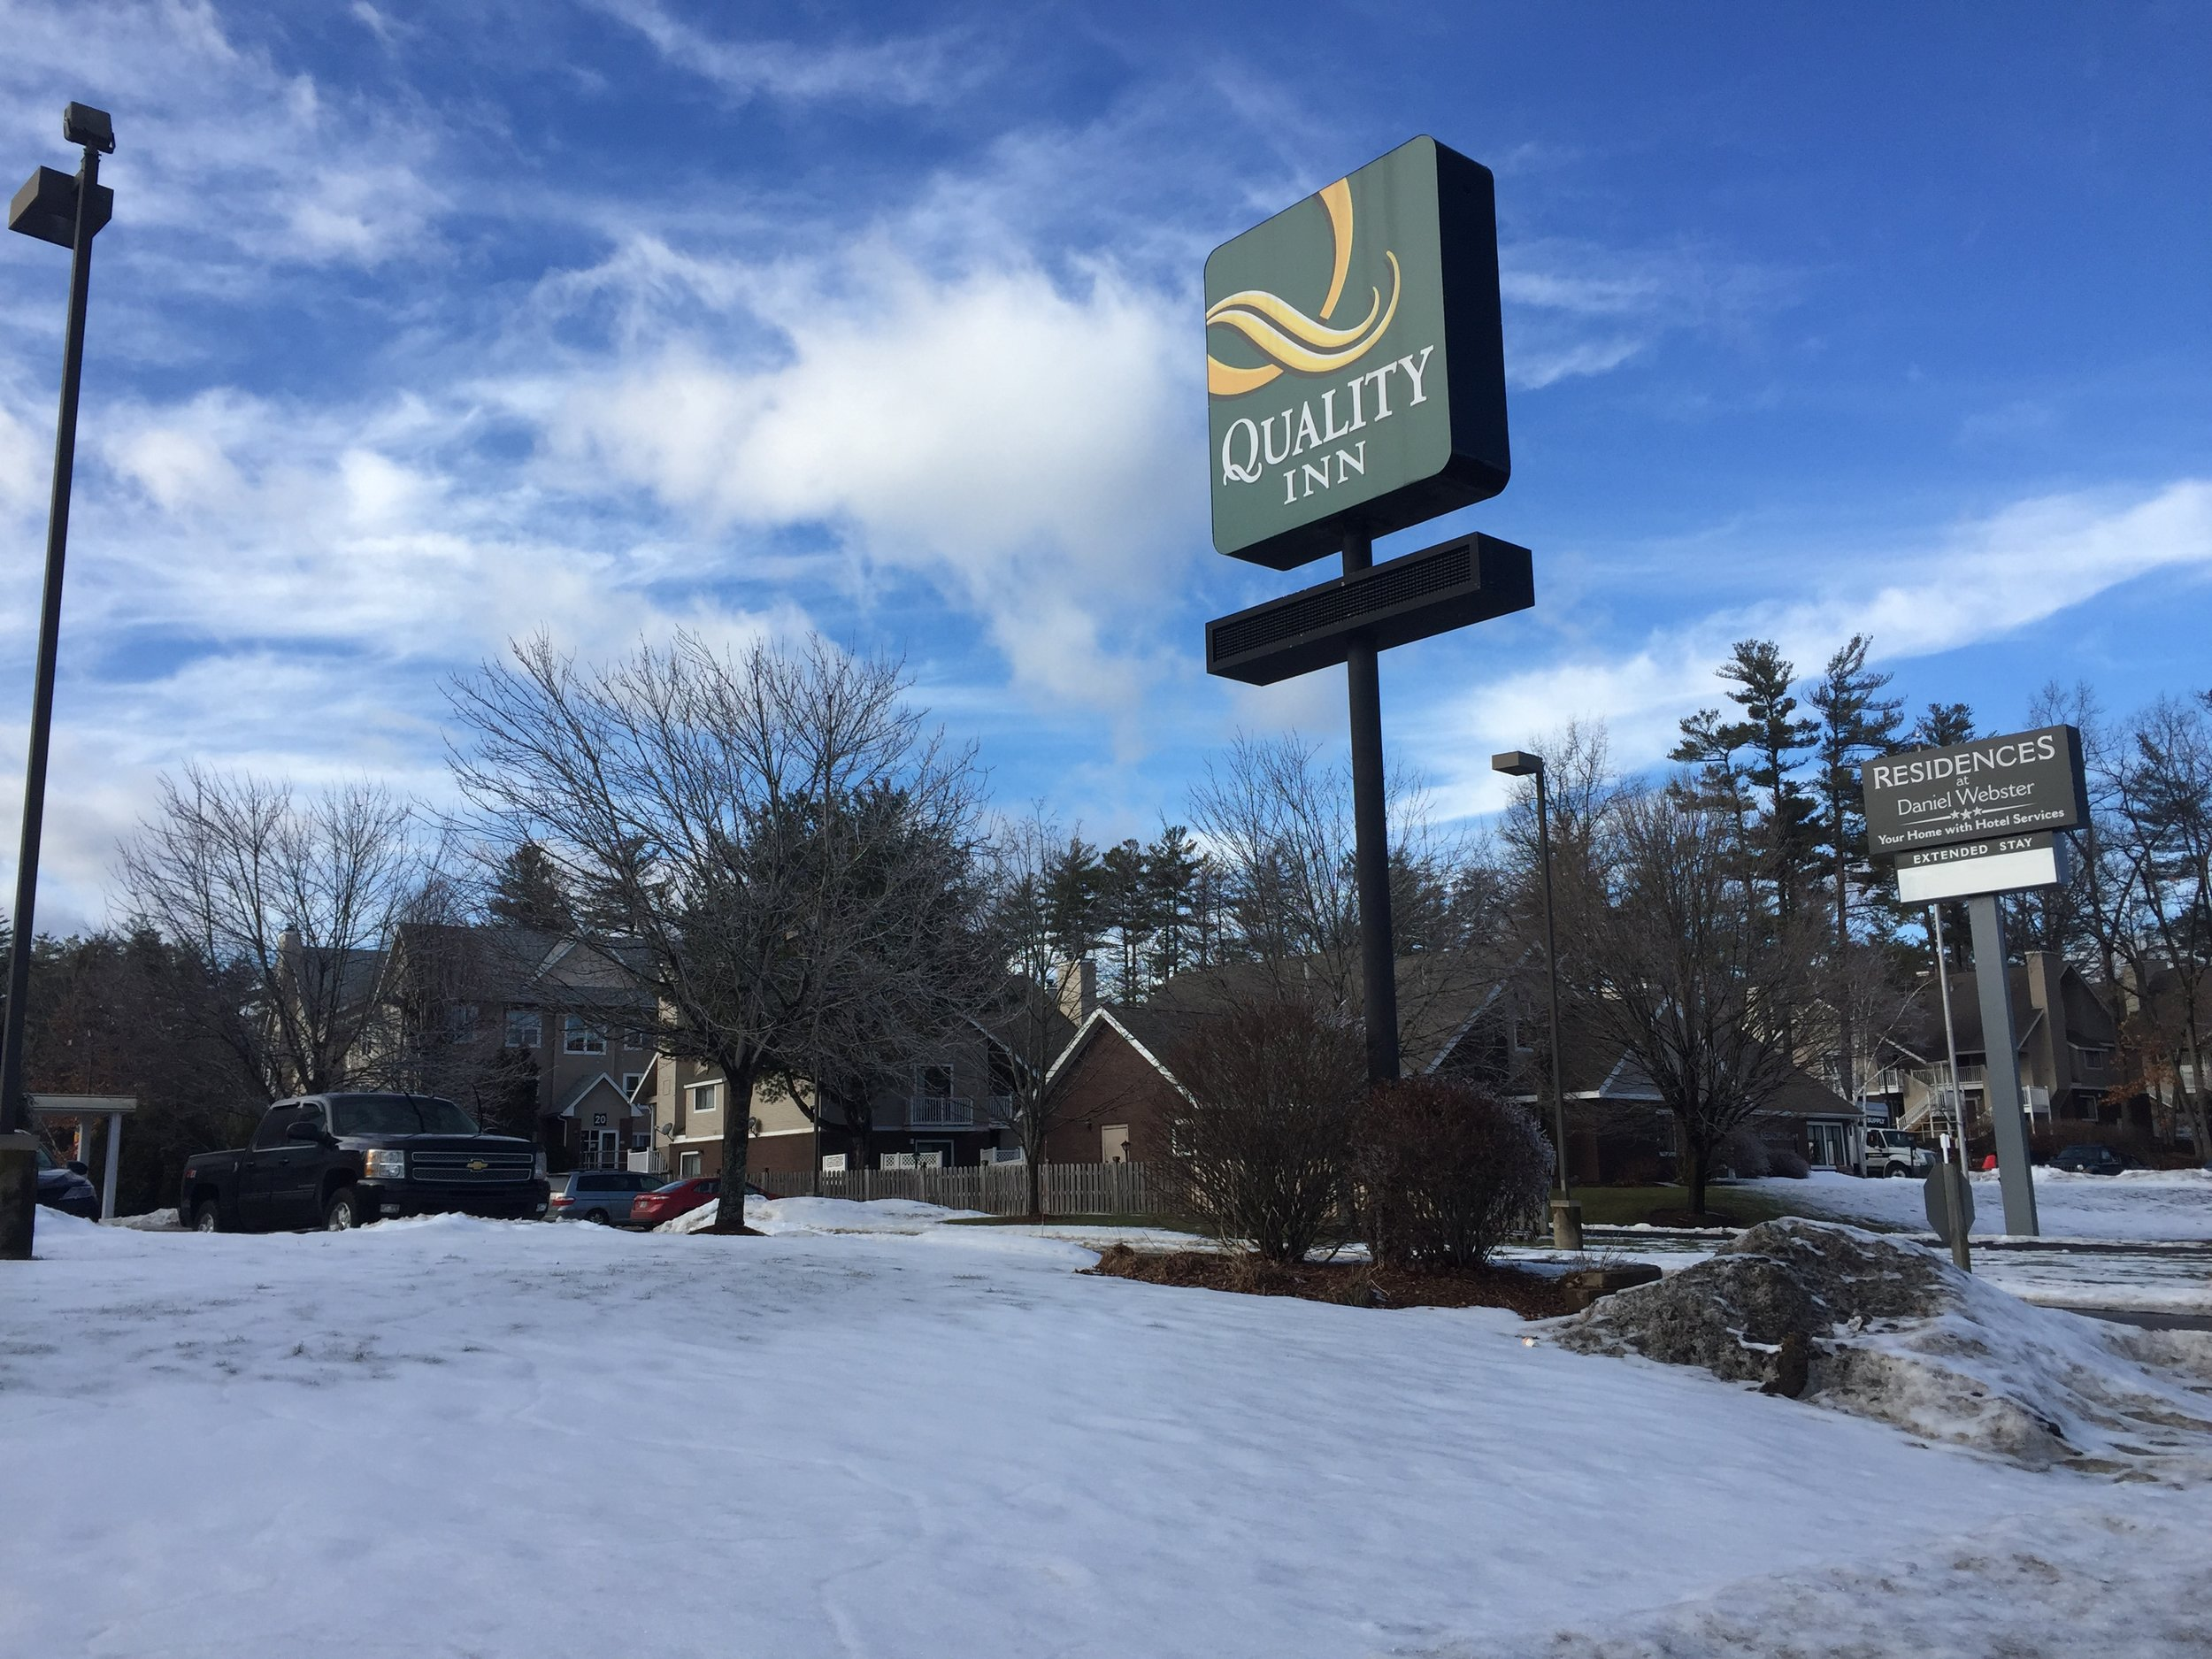 The Quality Inn and Daniel Webster Residences in Merrimack are within 100 feet from one another and the highway.  CREDIT PAIGE SUTHERLAND/NHPR